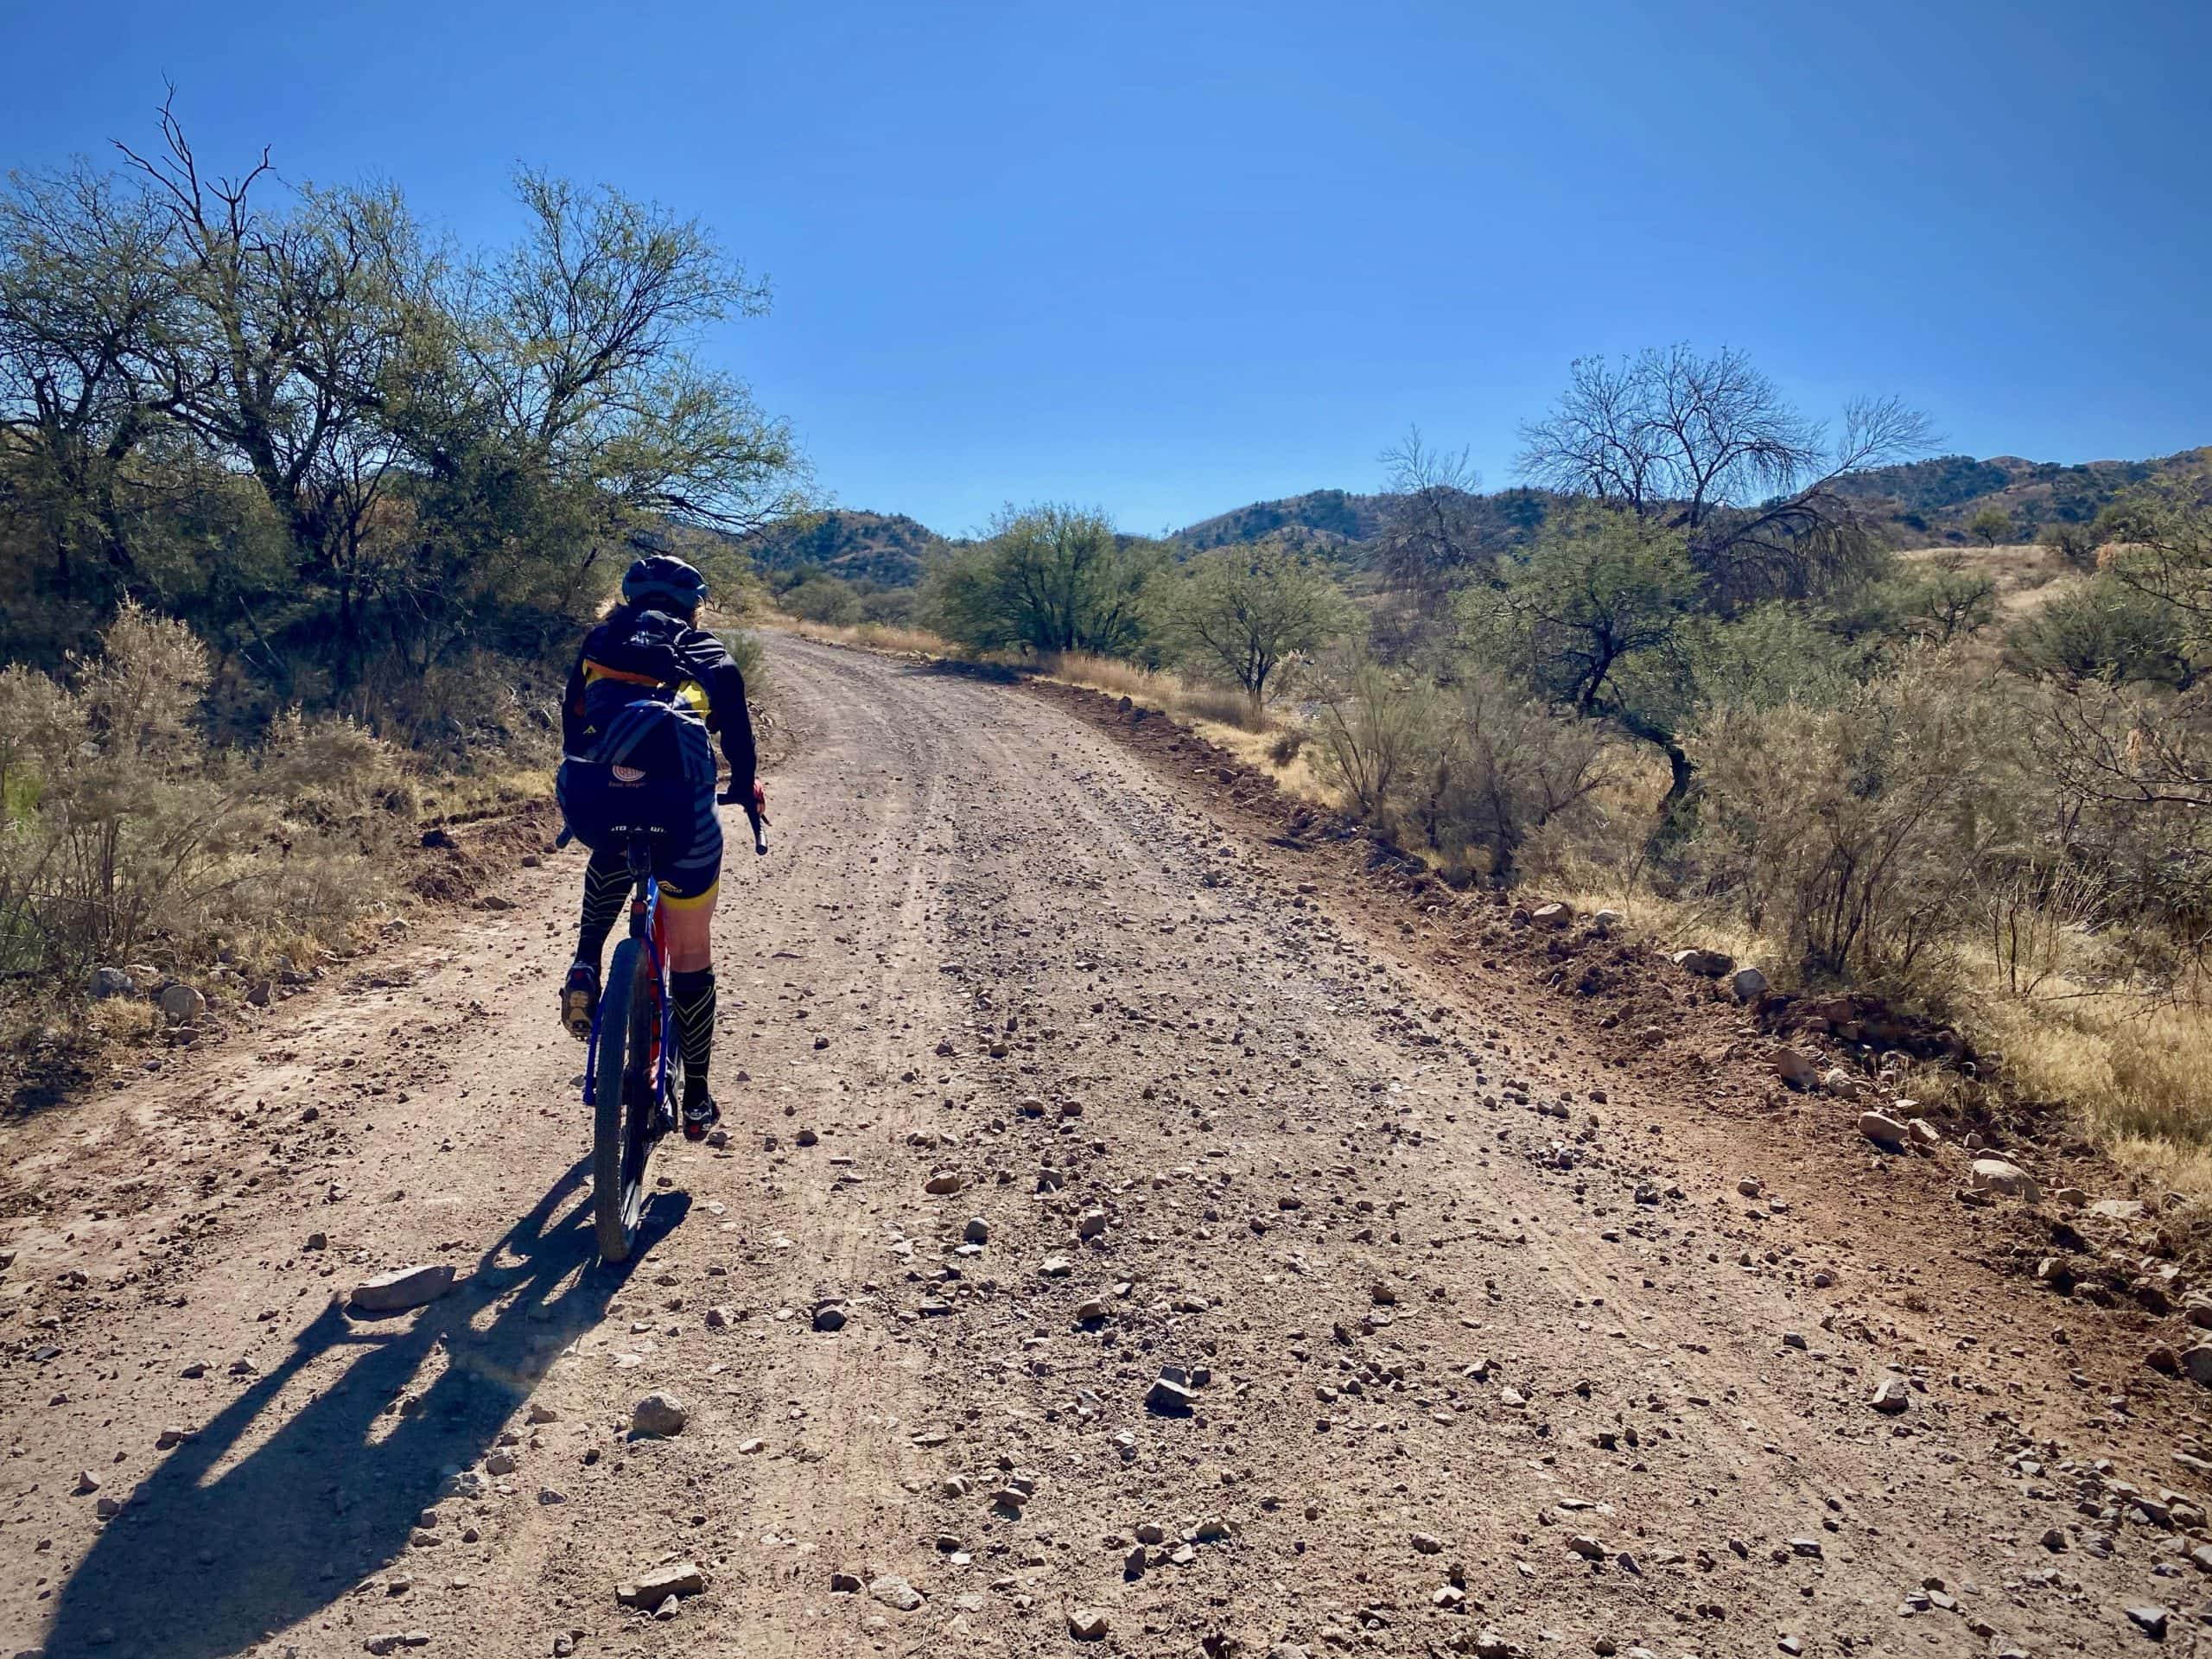 Cyclist on the gravel portion of Ruby Road in the Coronado National Forest.